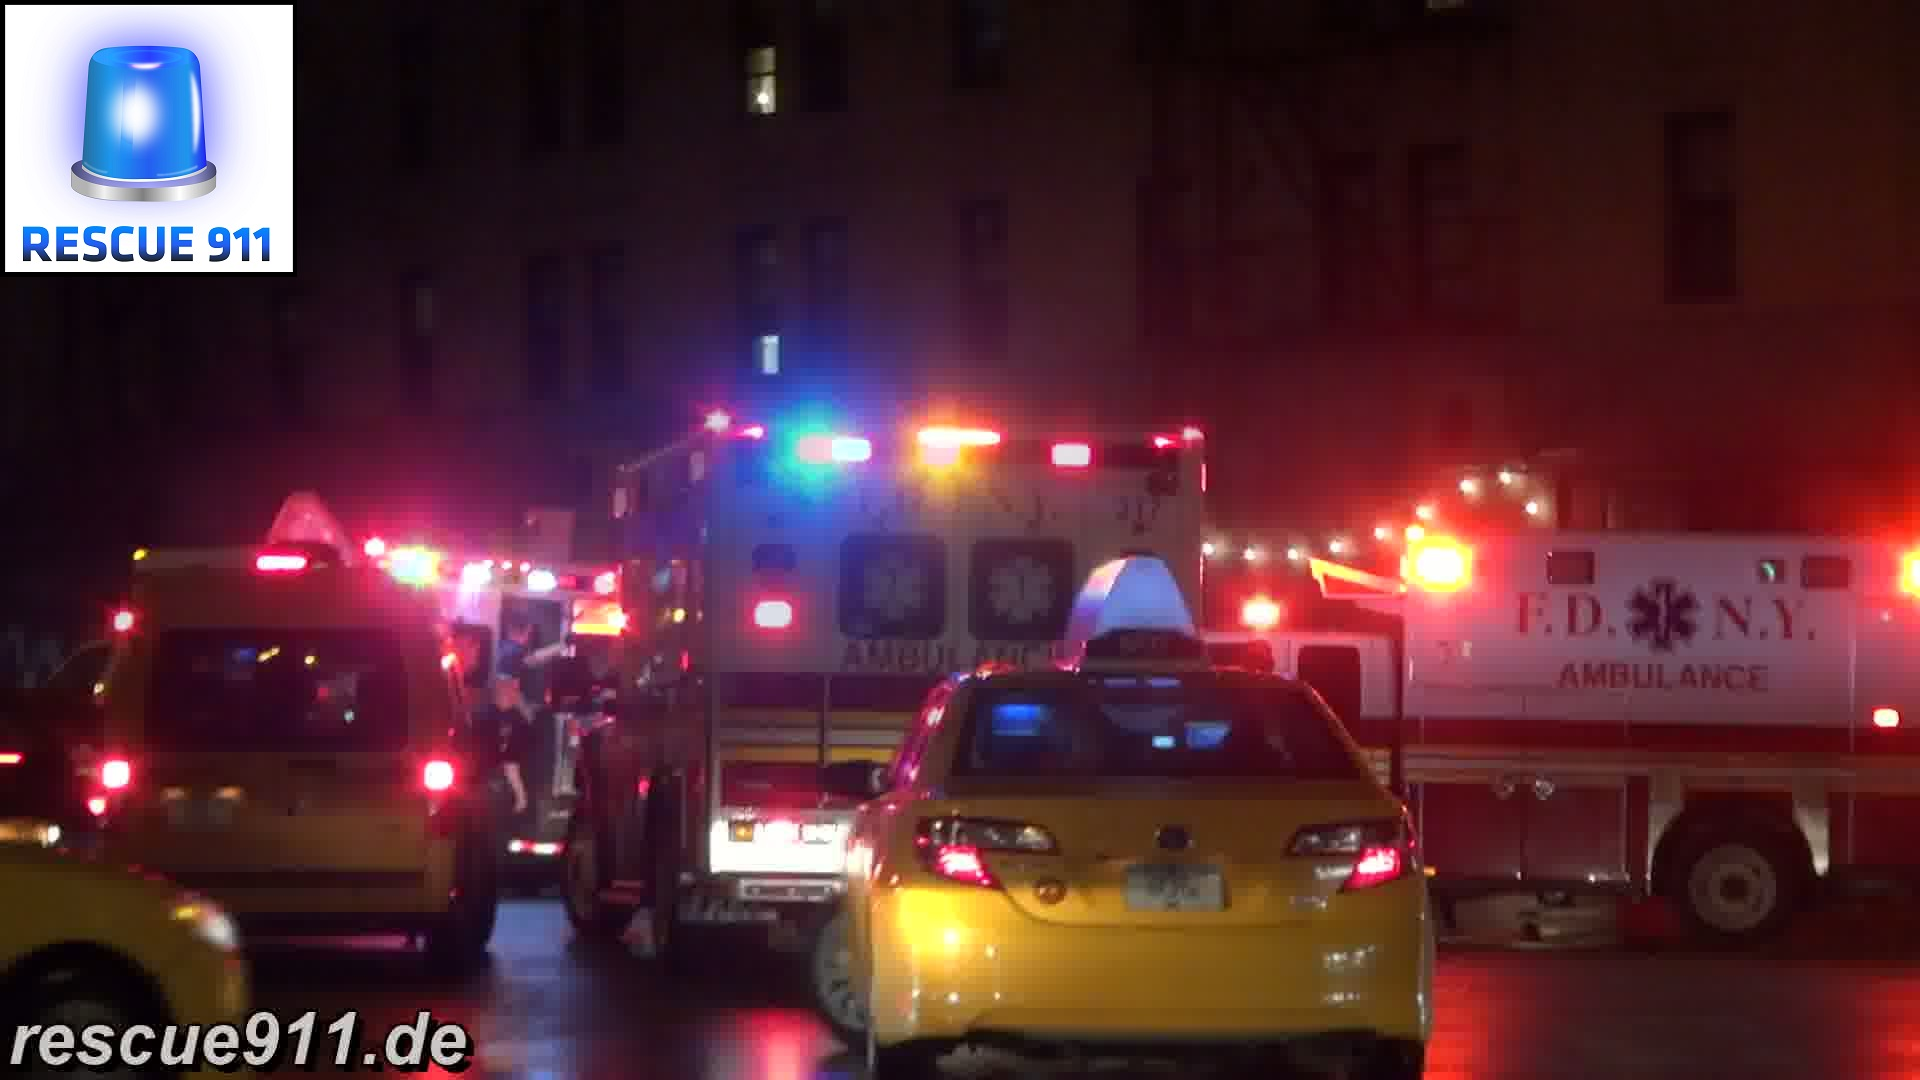 3x Ambulance + EMS Battalion FDNY + Police Car NYPD (collection) (stream)